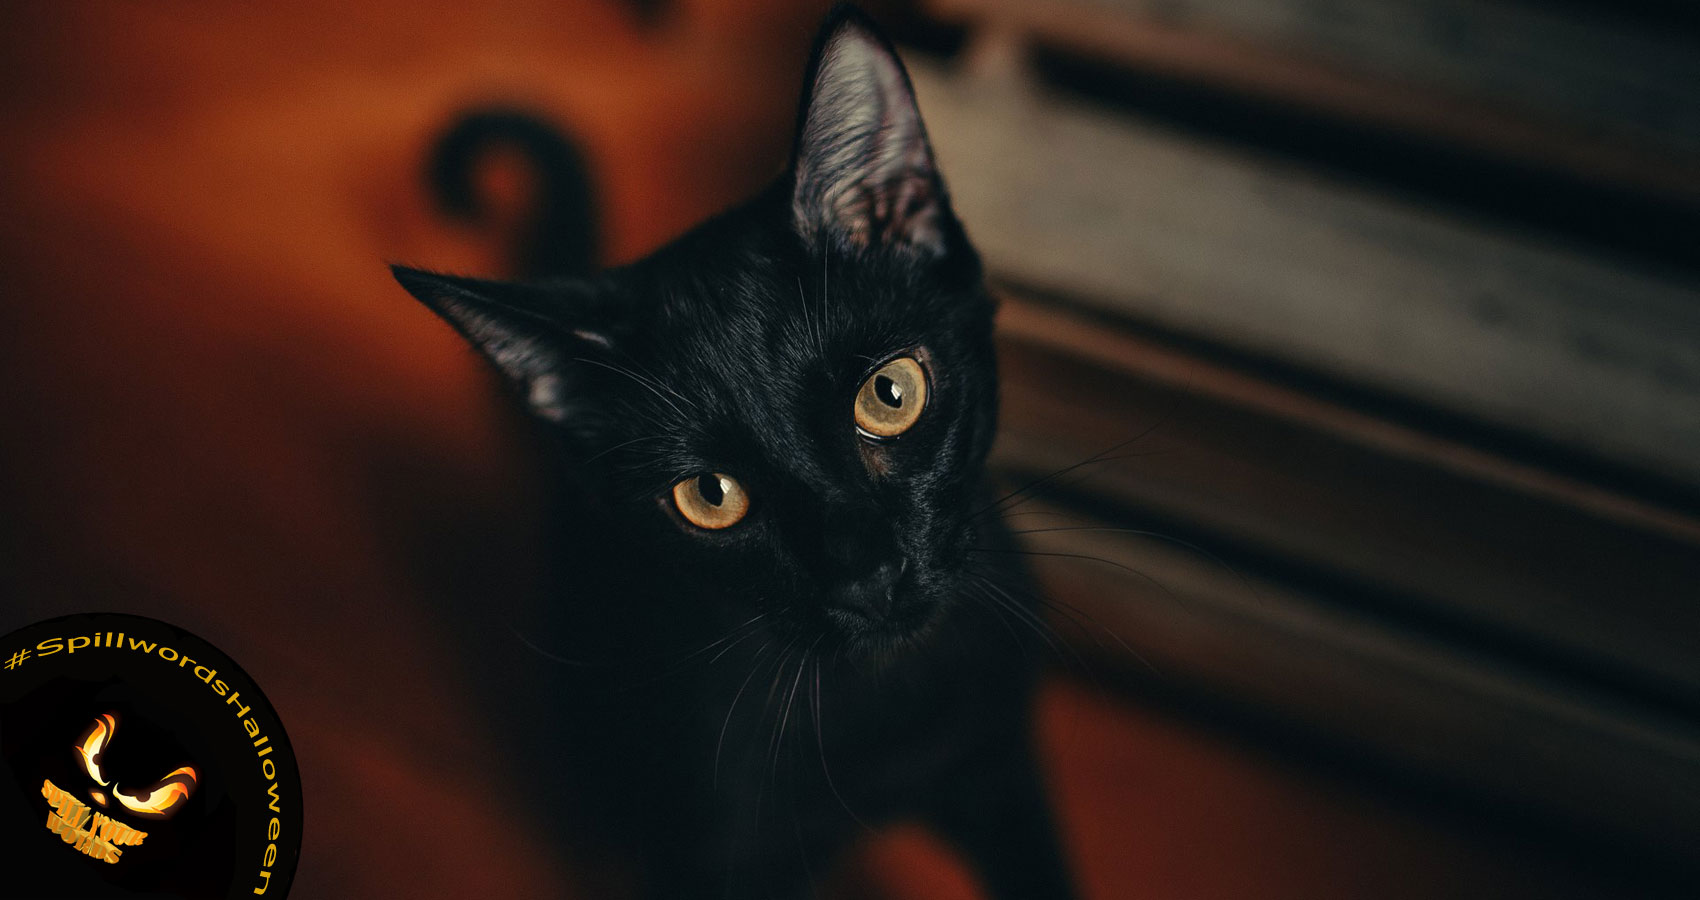 Witches Cats, a poem by Jaya Avendel at Spillwords.com